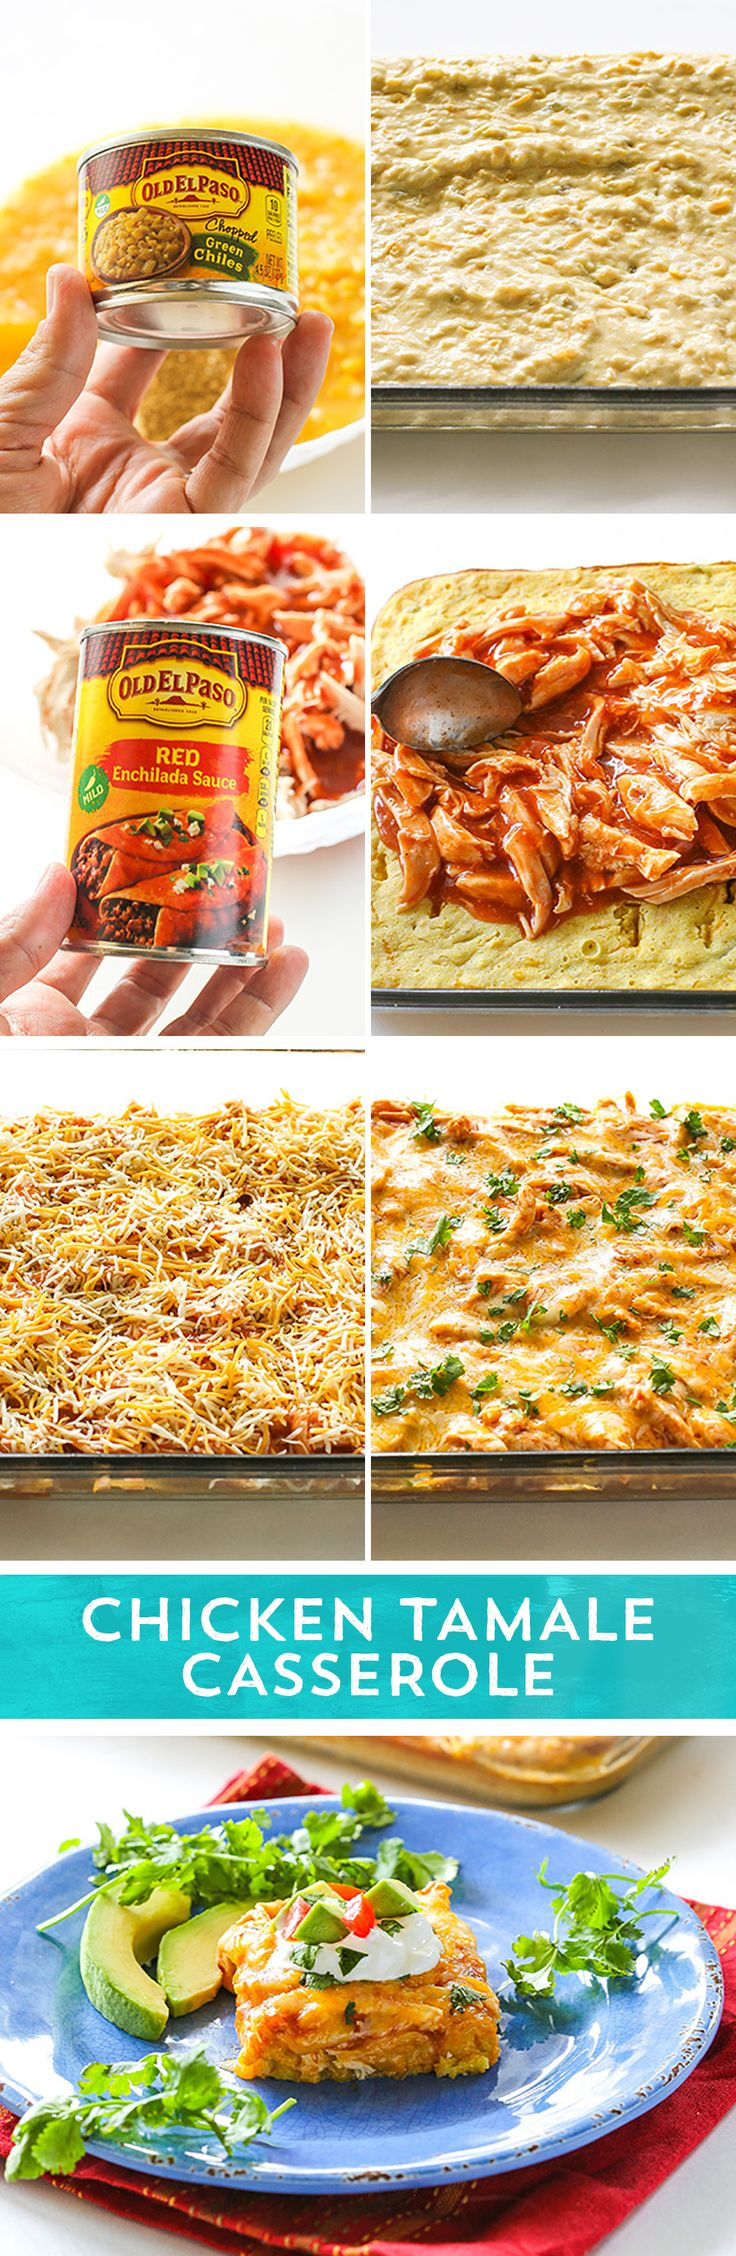 Need a simple dinner idea that your family is sure to love? Try this Chicken Tamale Casserole from @girlwhoate! It is all the classic flavors of tamales that you love - without any of the fussy wrapping and steaming! This dish packs just enough spice to keep it exciting, but is mild enough for the whole family! Ready in 45 minutes!